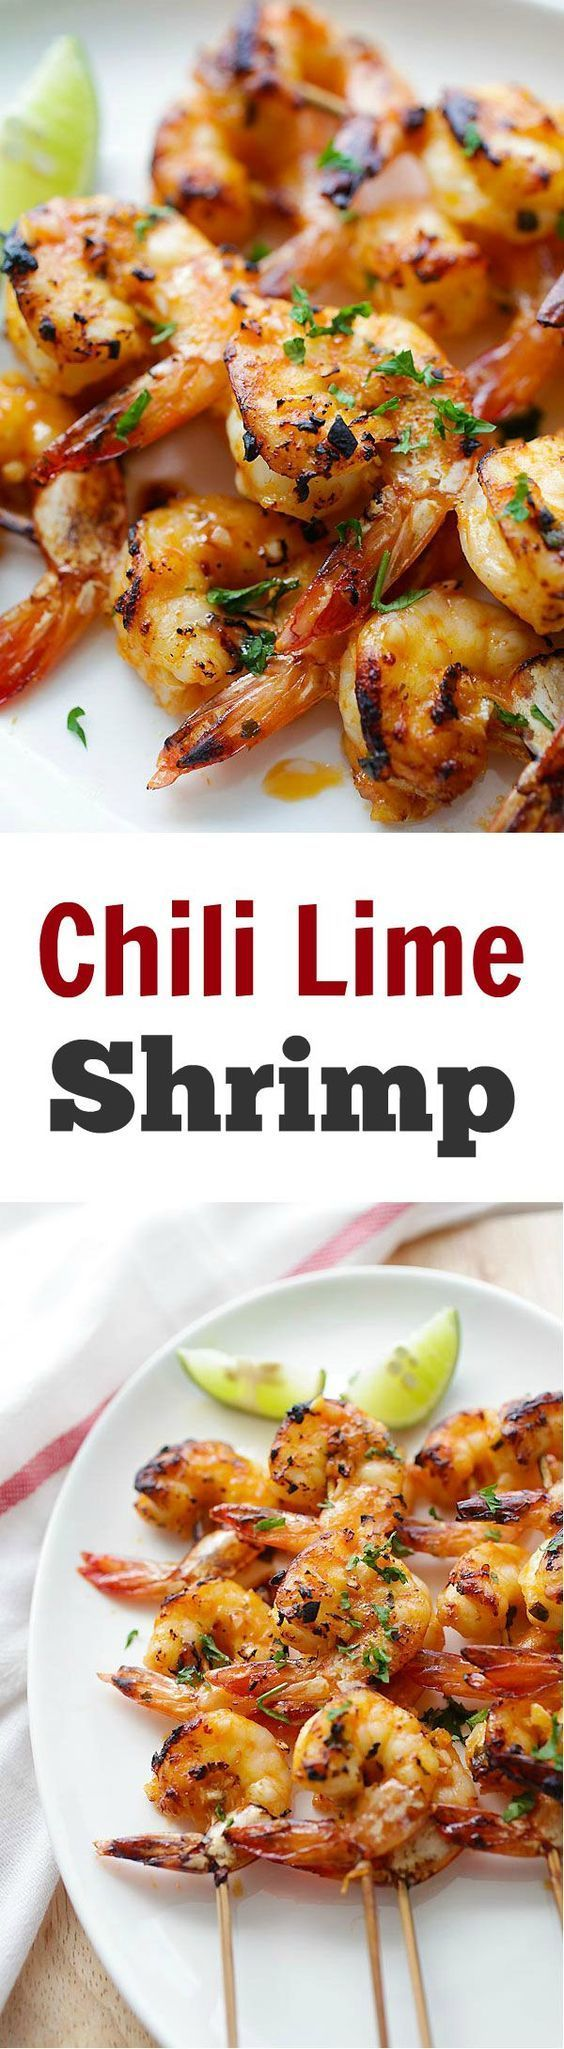 Excellent For Shrimp Tacos!Chili Lime Shrimp - juicy and succulent shrimp marinated with chili and lime and grill. http://rasamalaysia.com/chili-lime-shrimp/2/